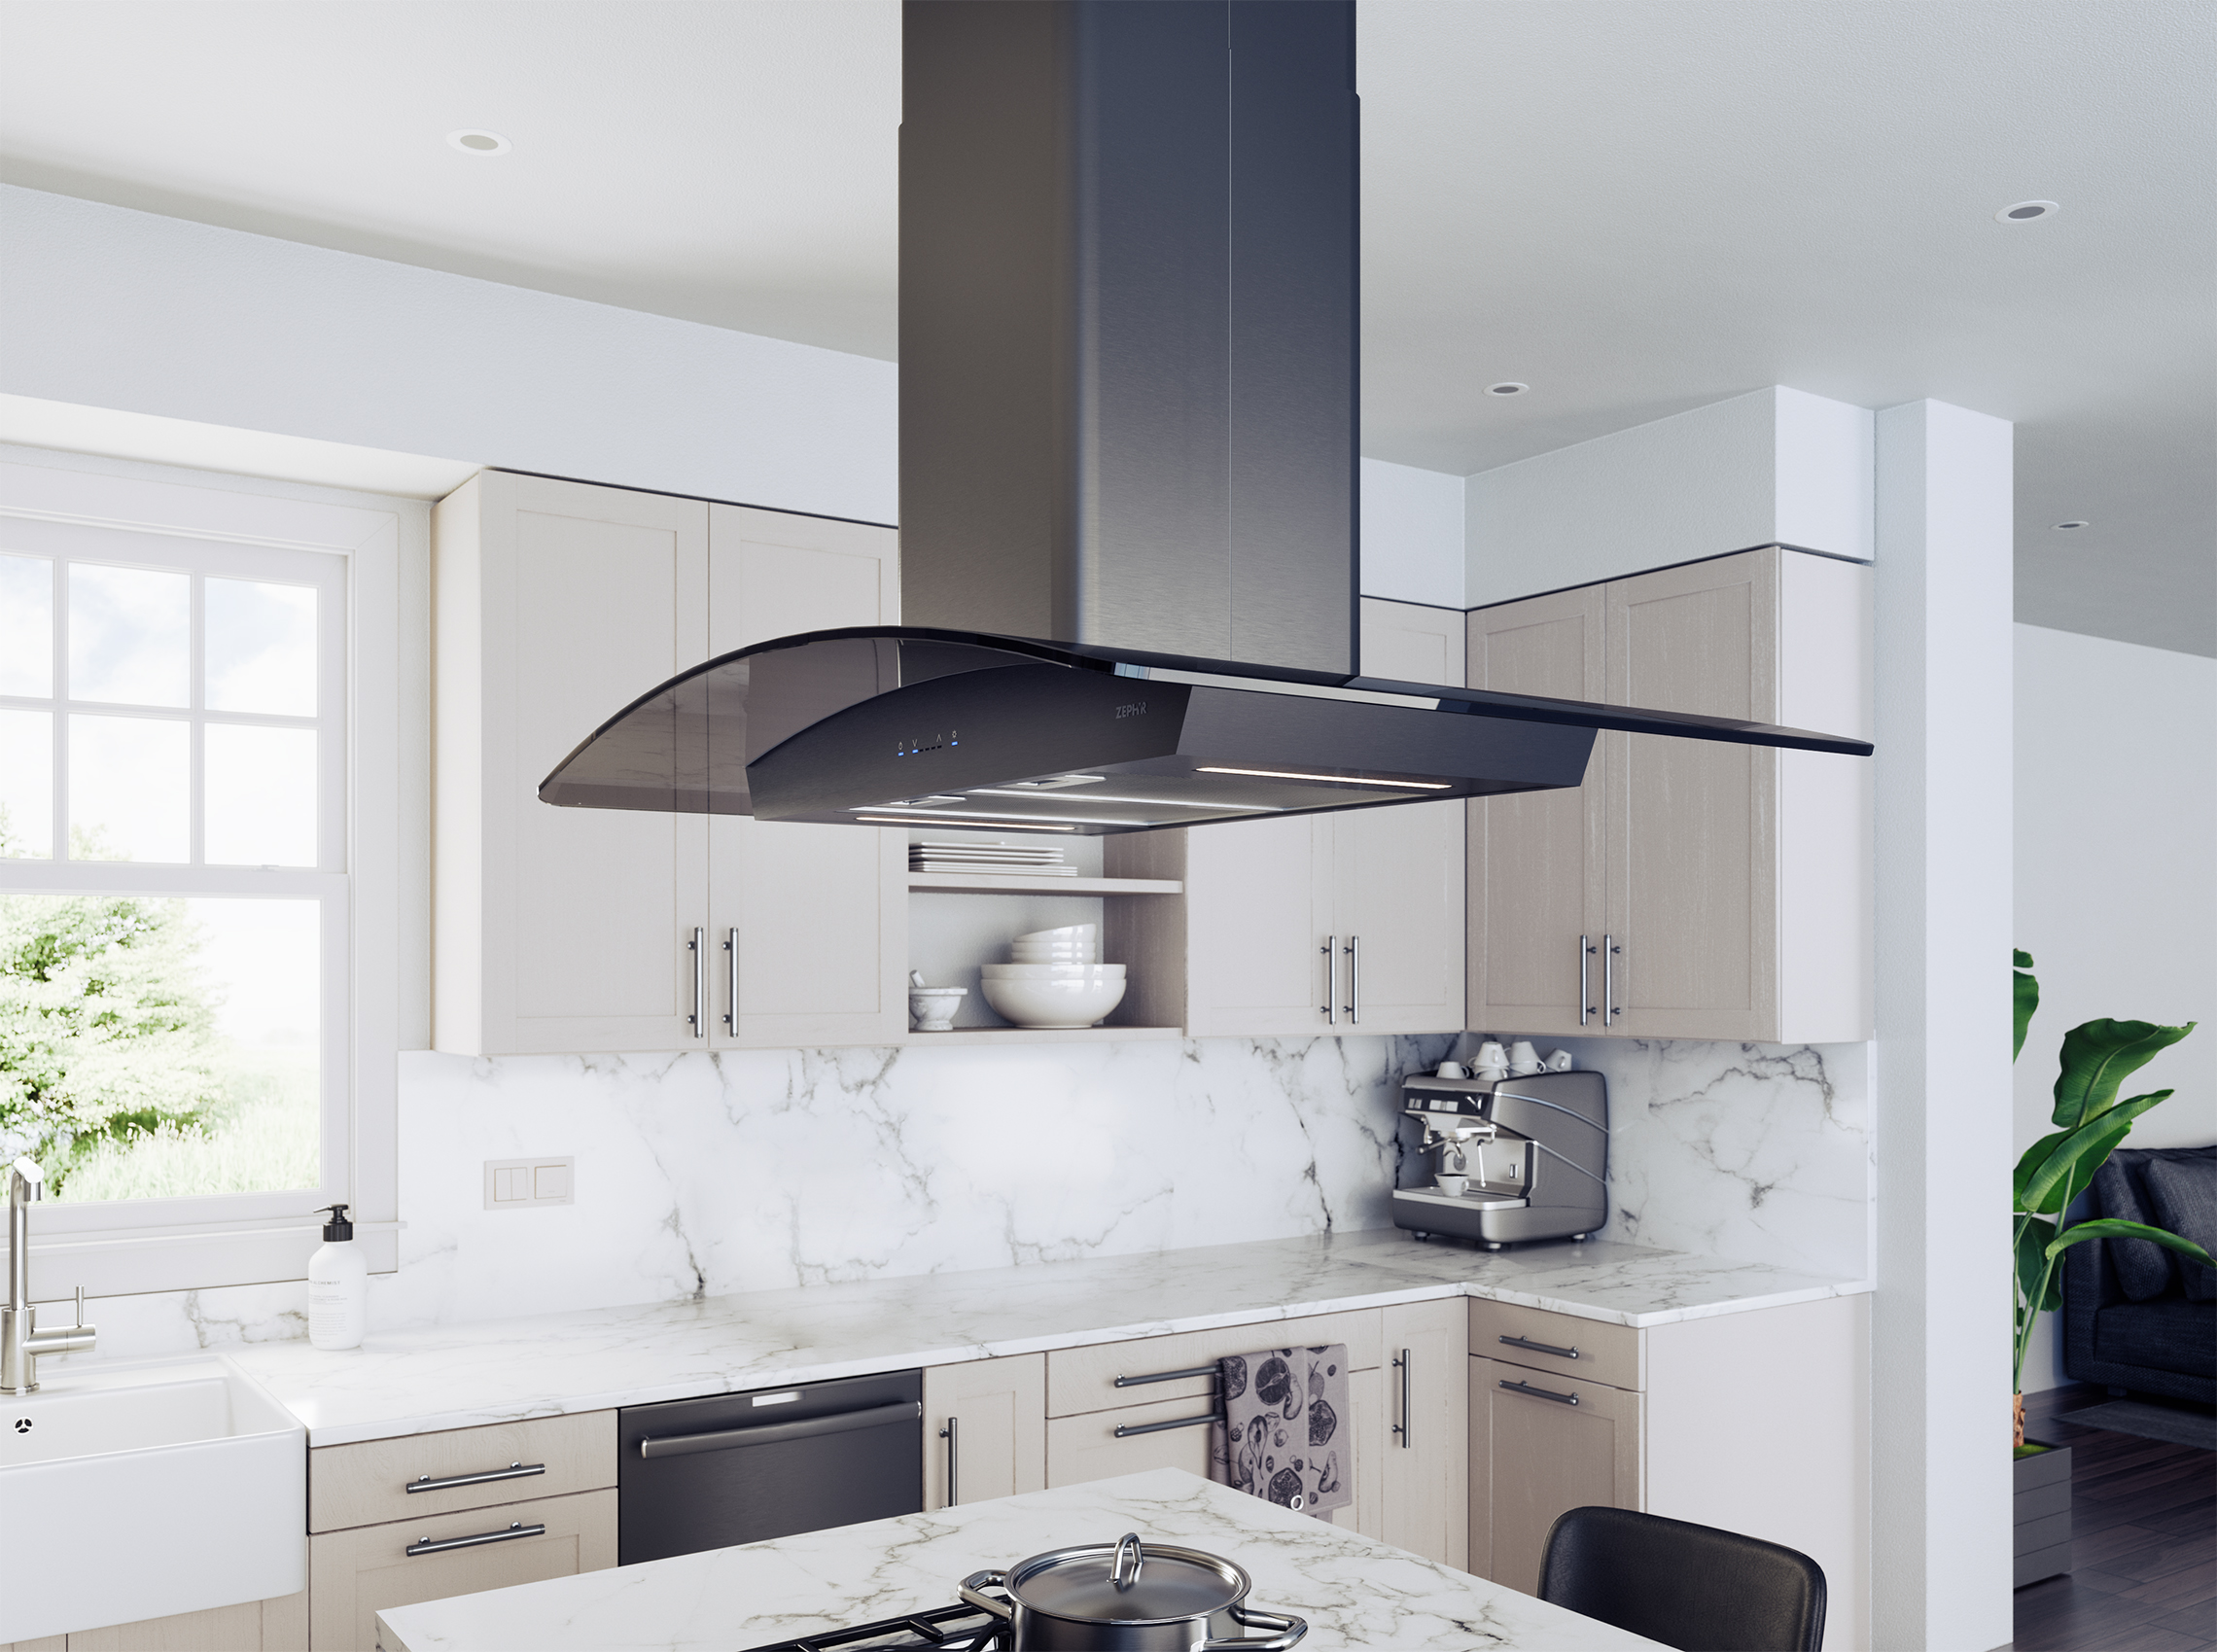 Zephyr Introduces First Black Stainless Steel Island Hood